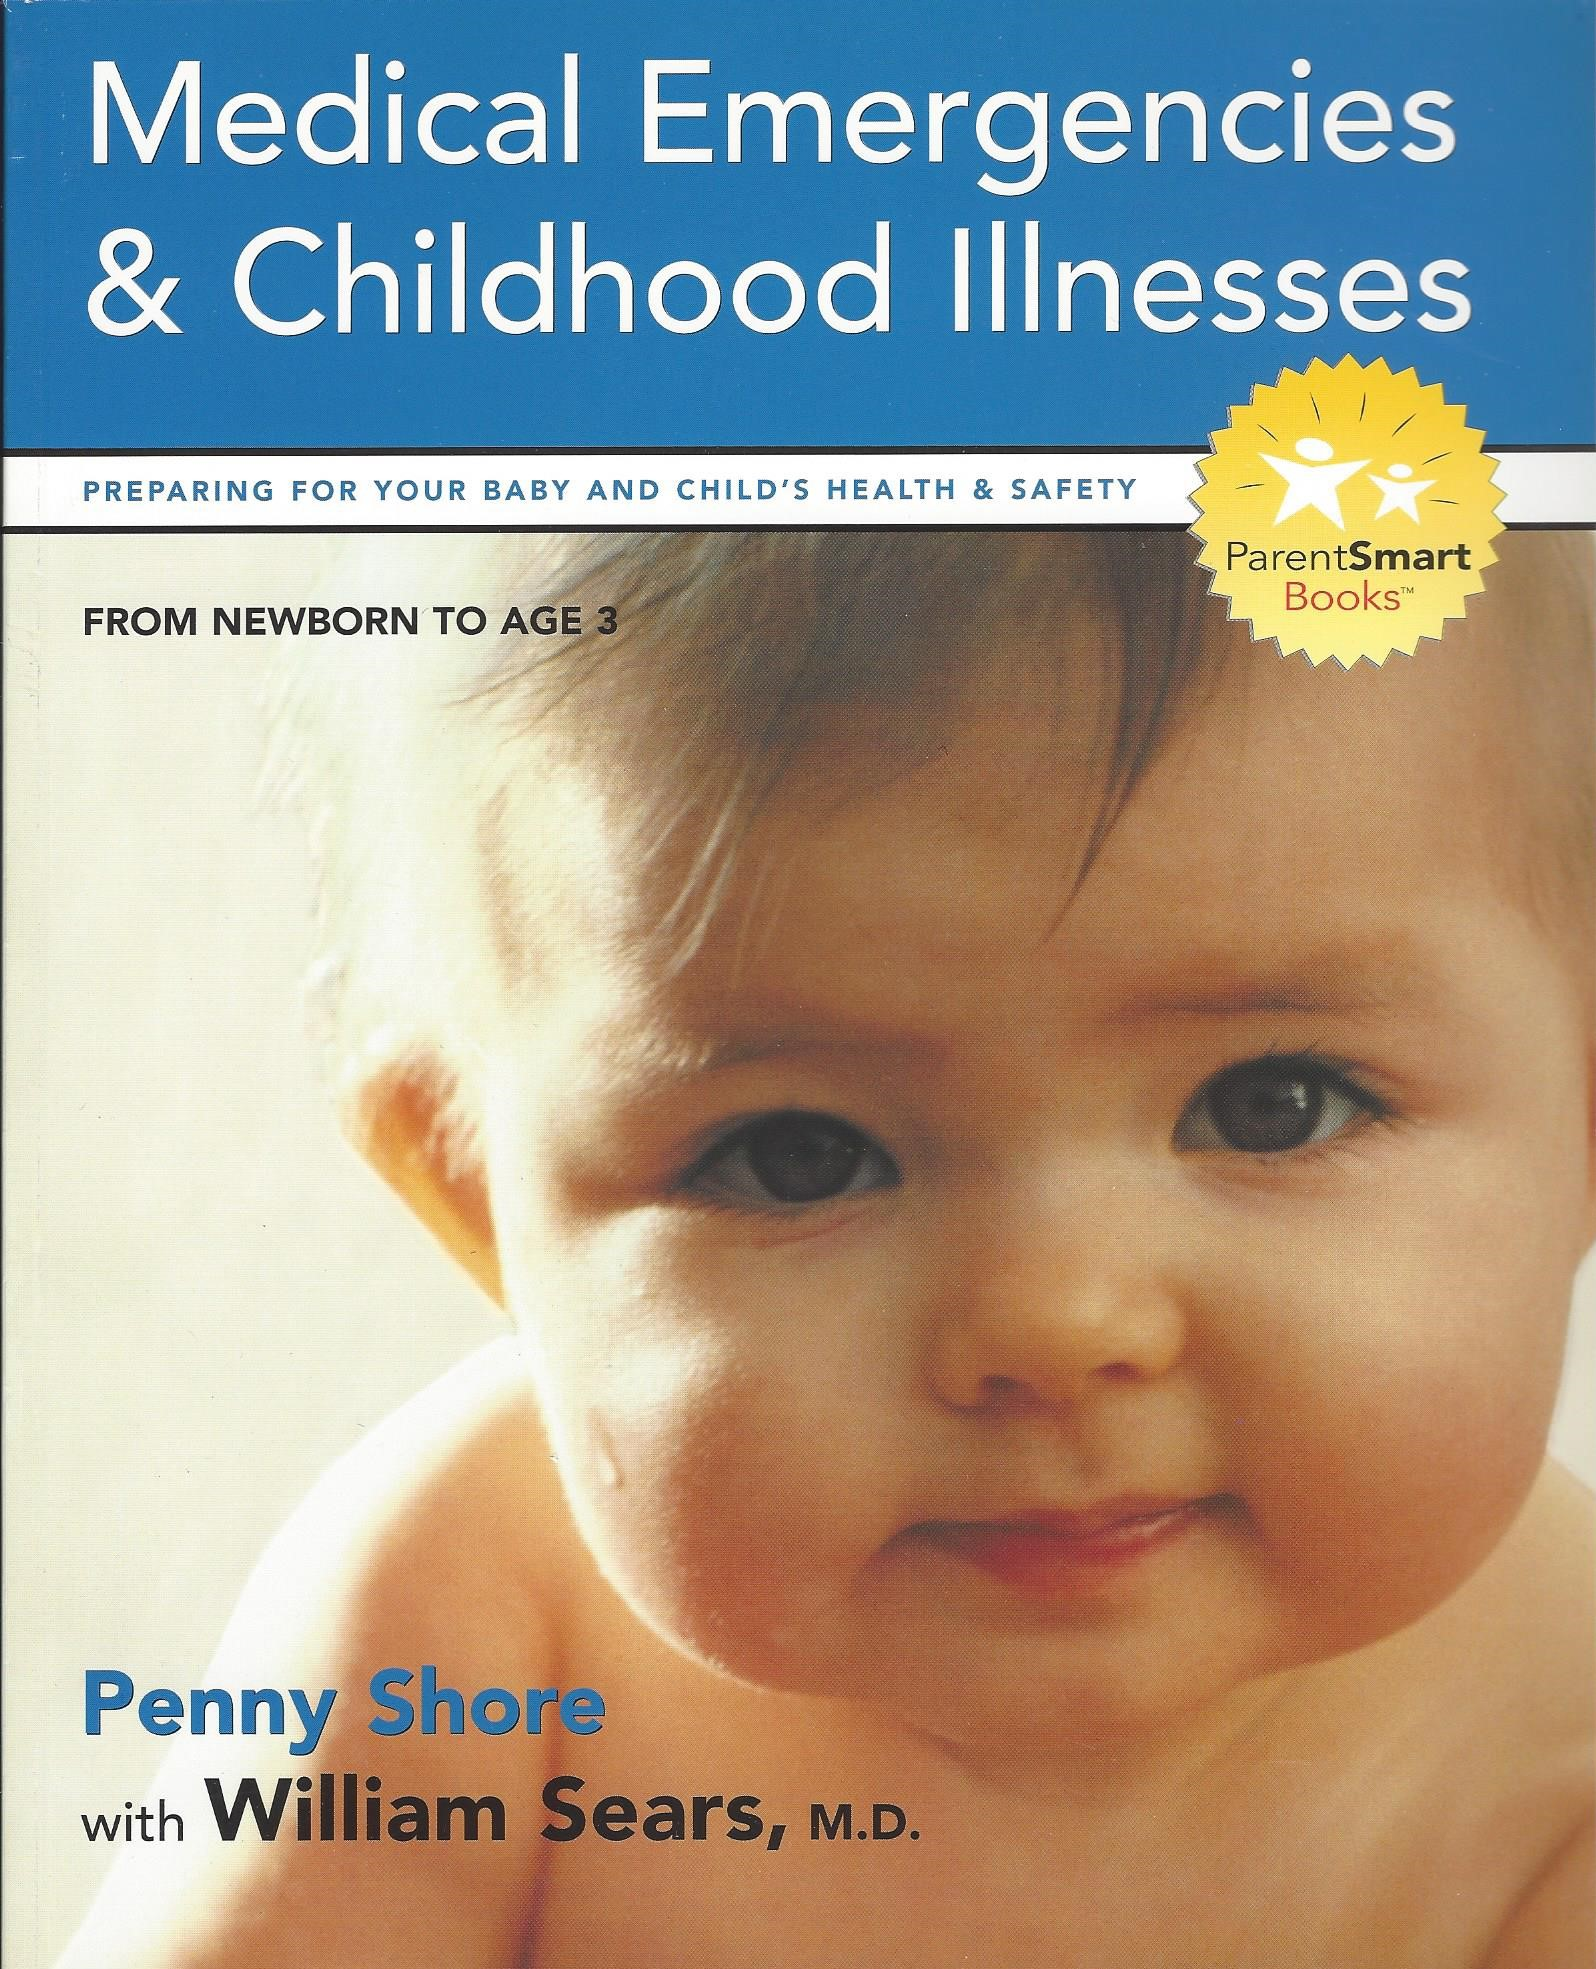 - Medical Emergencies & Childhood IllnessesBy Penny Shore with William Sears, M.D.